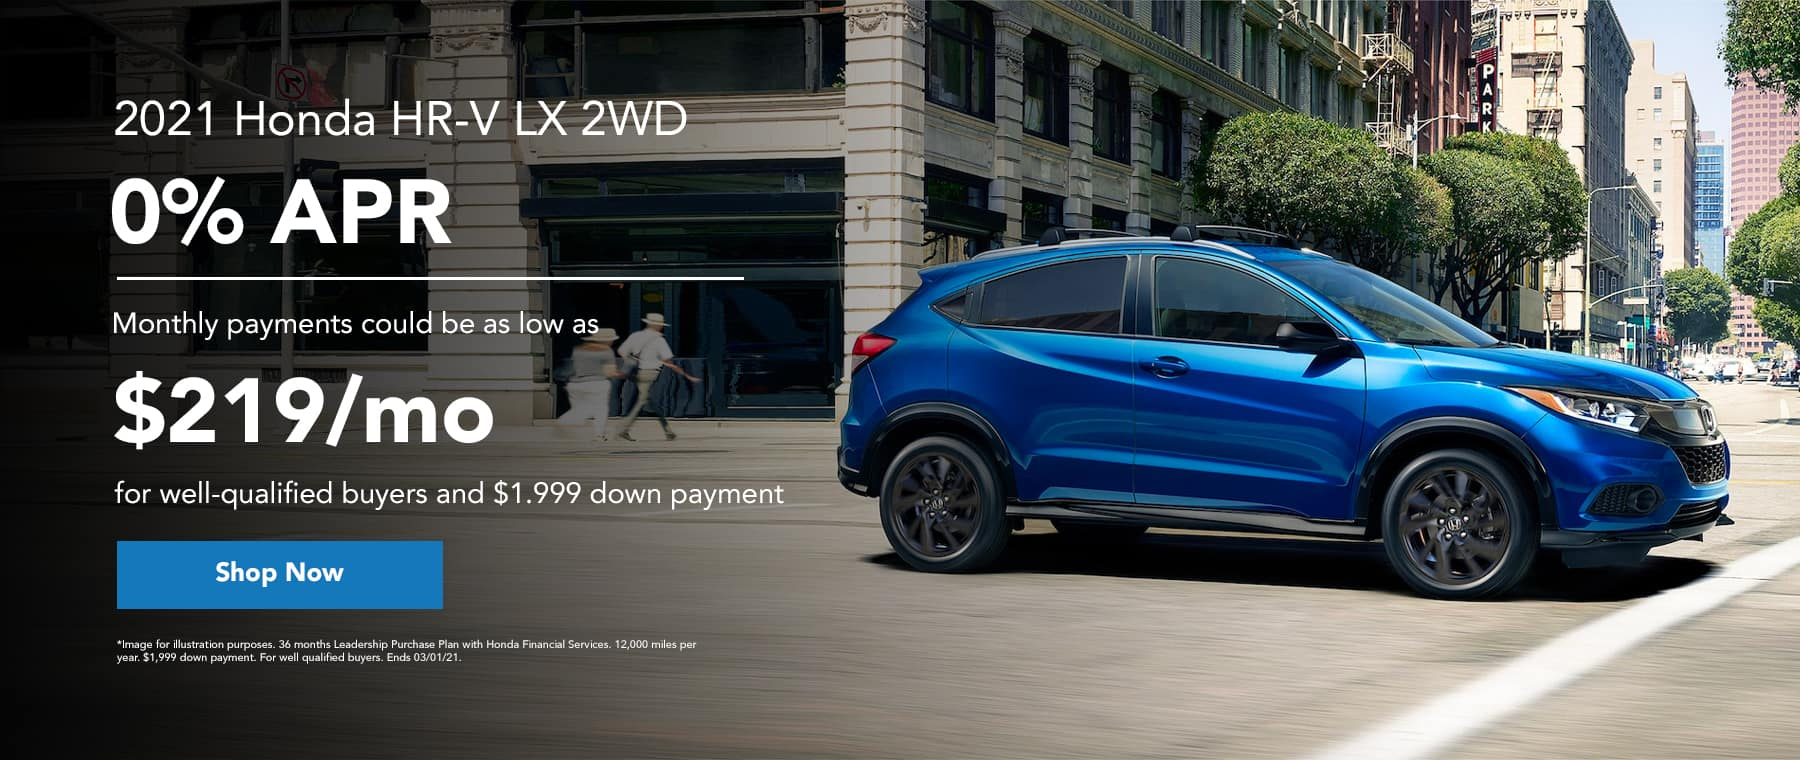 2021 Honda HR-V LX 2WD 0% APR - monthly payments could be as low as $219/mo